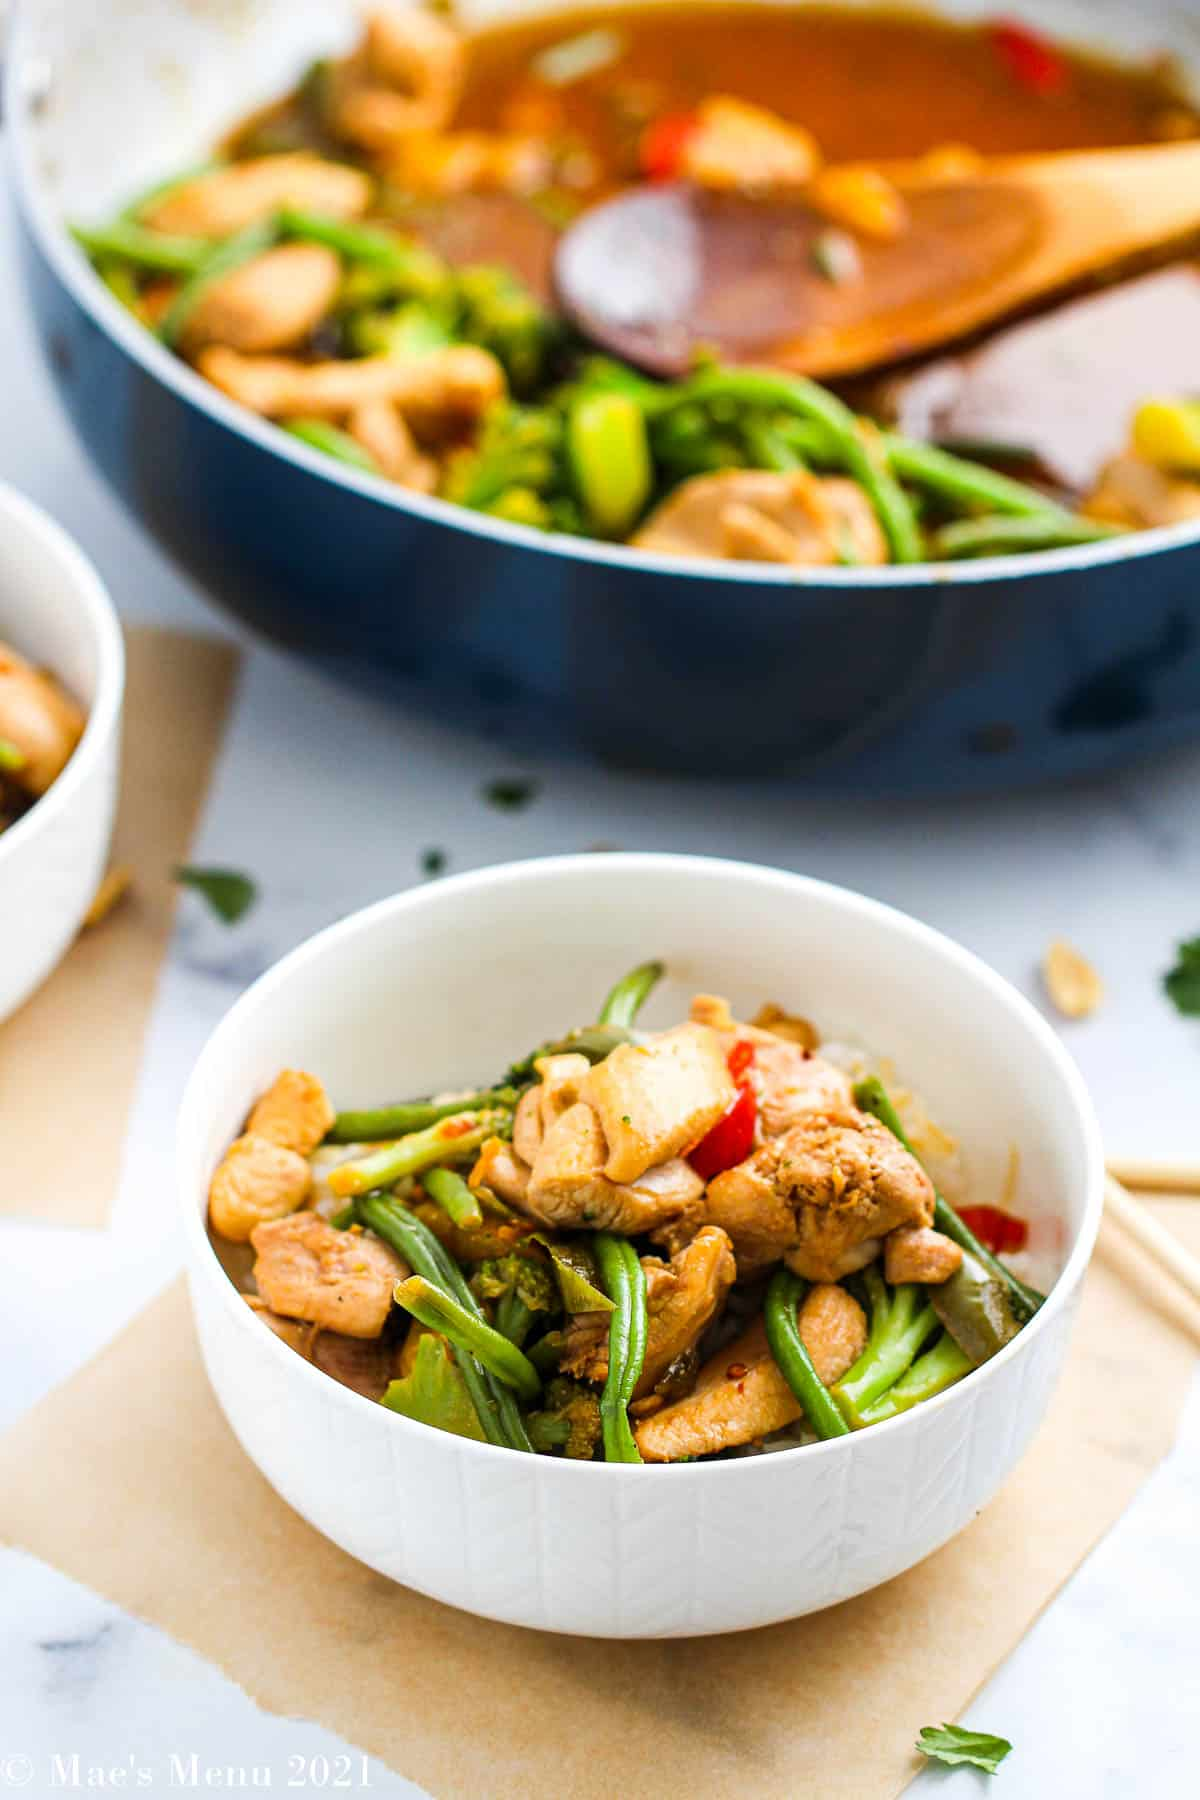 An up-close shot of a chicken and frozen vegetable stir-fry in a bowl with a pan in the background